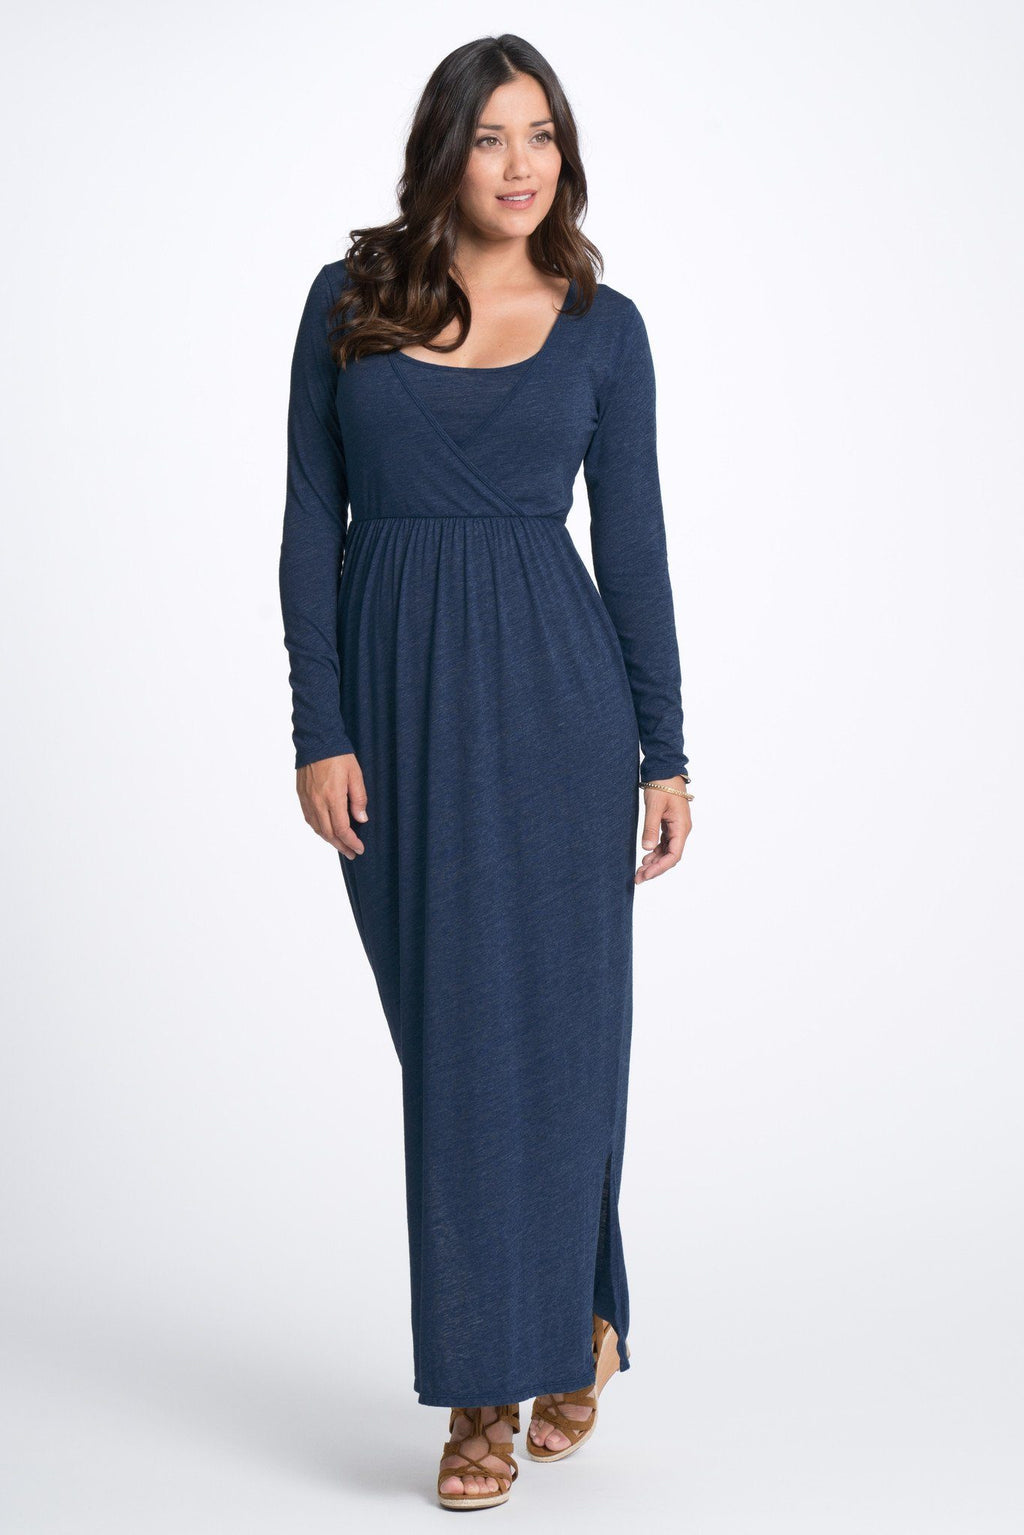 Long Sleeve Cross Top Nursing Maxi Dress - Navy Dress Bun Maternity Nursing Apparel